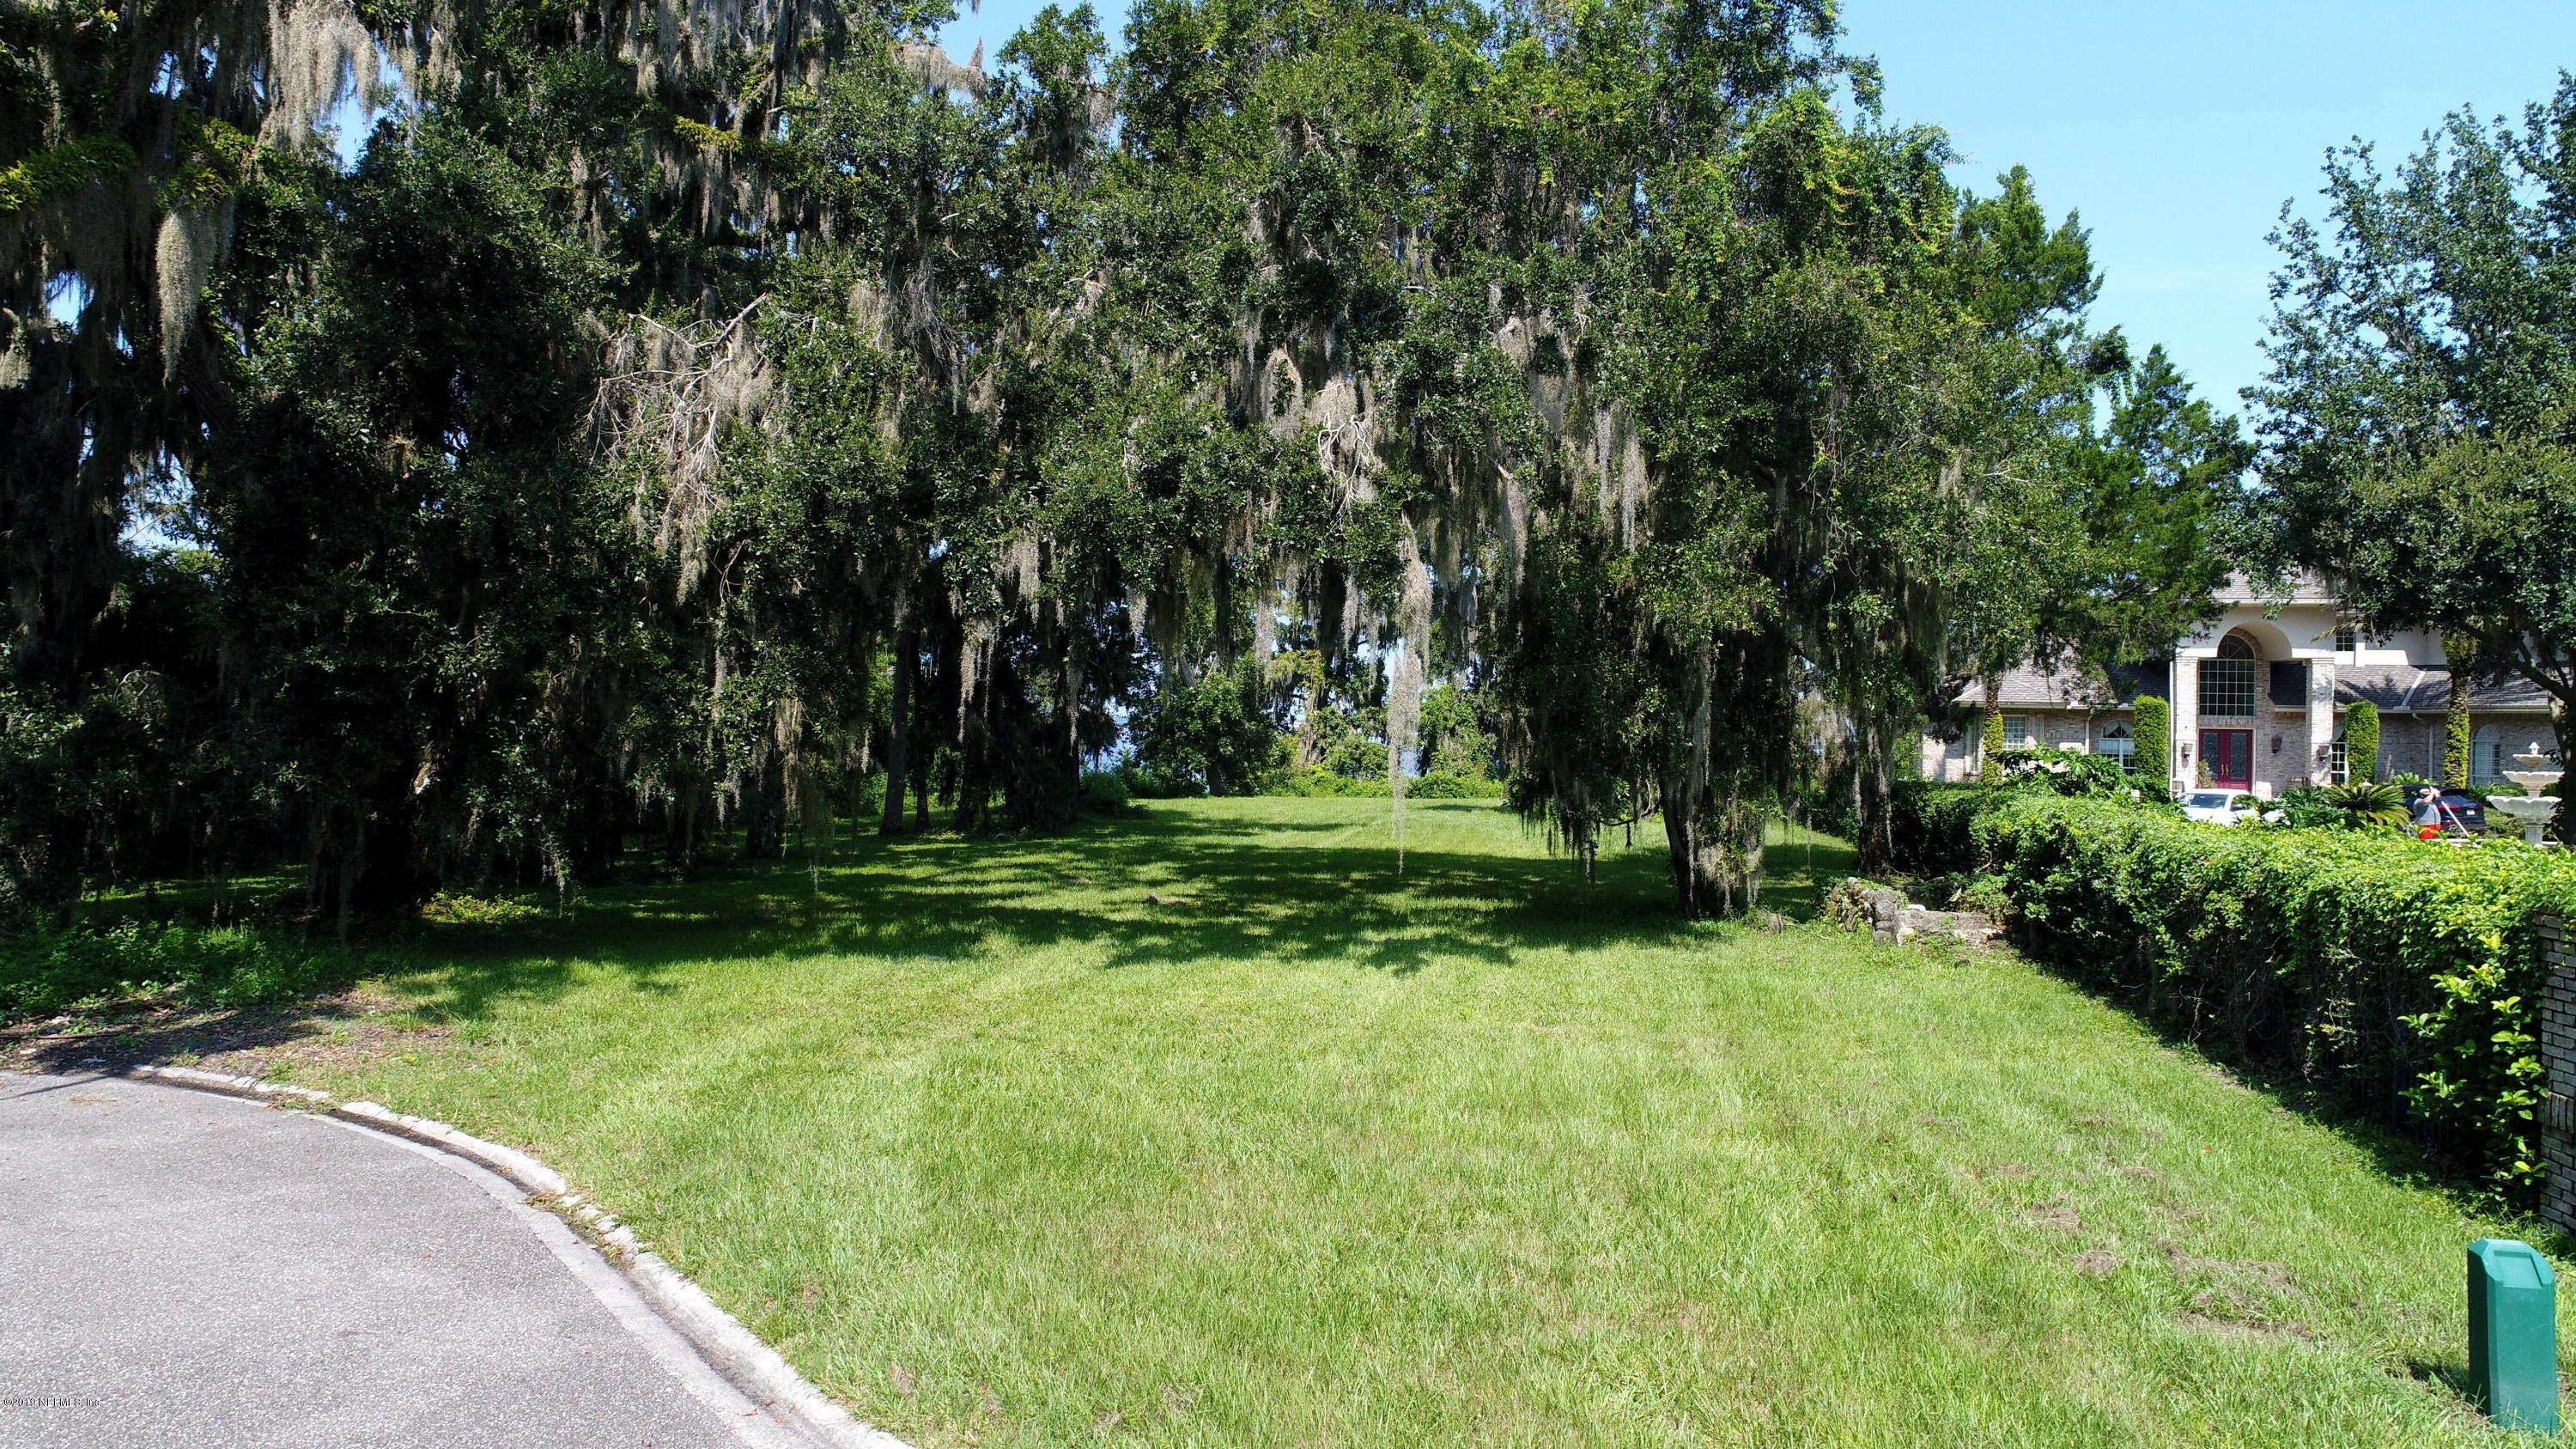 0 SPREADING OAKS, JACKSONVILLE, FLORIDA 32223, 4 Bedrooms Bedrooms, ,3 BathroomsBathrooms,Residential - single family,For sale,SPREADING OAKS,981685